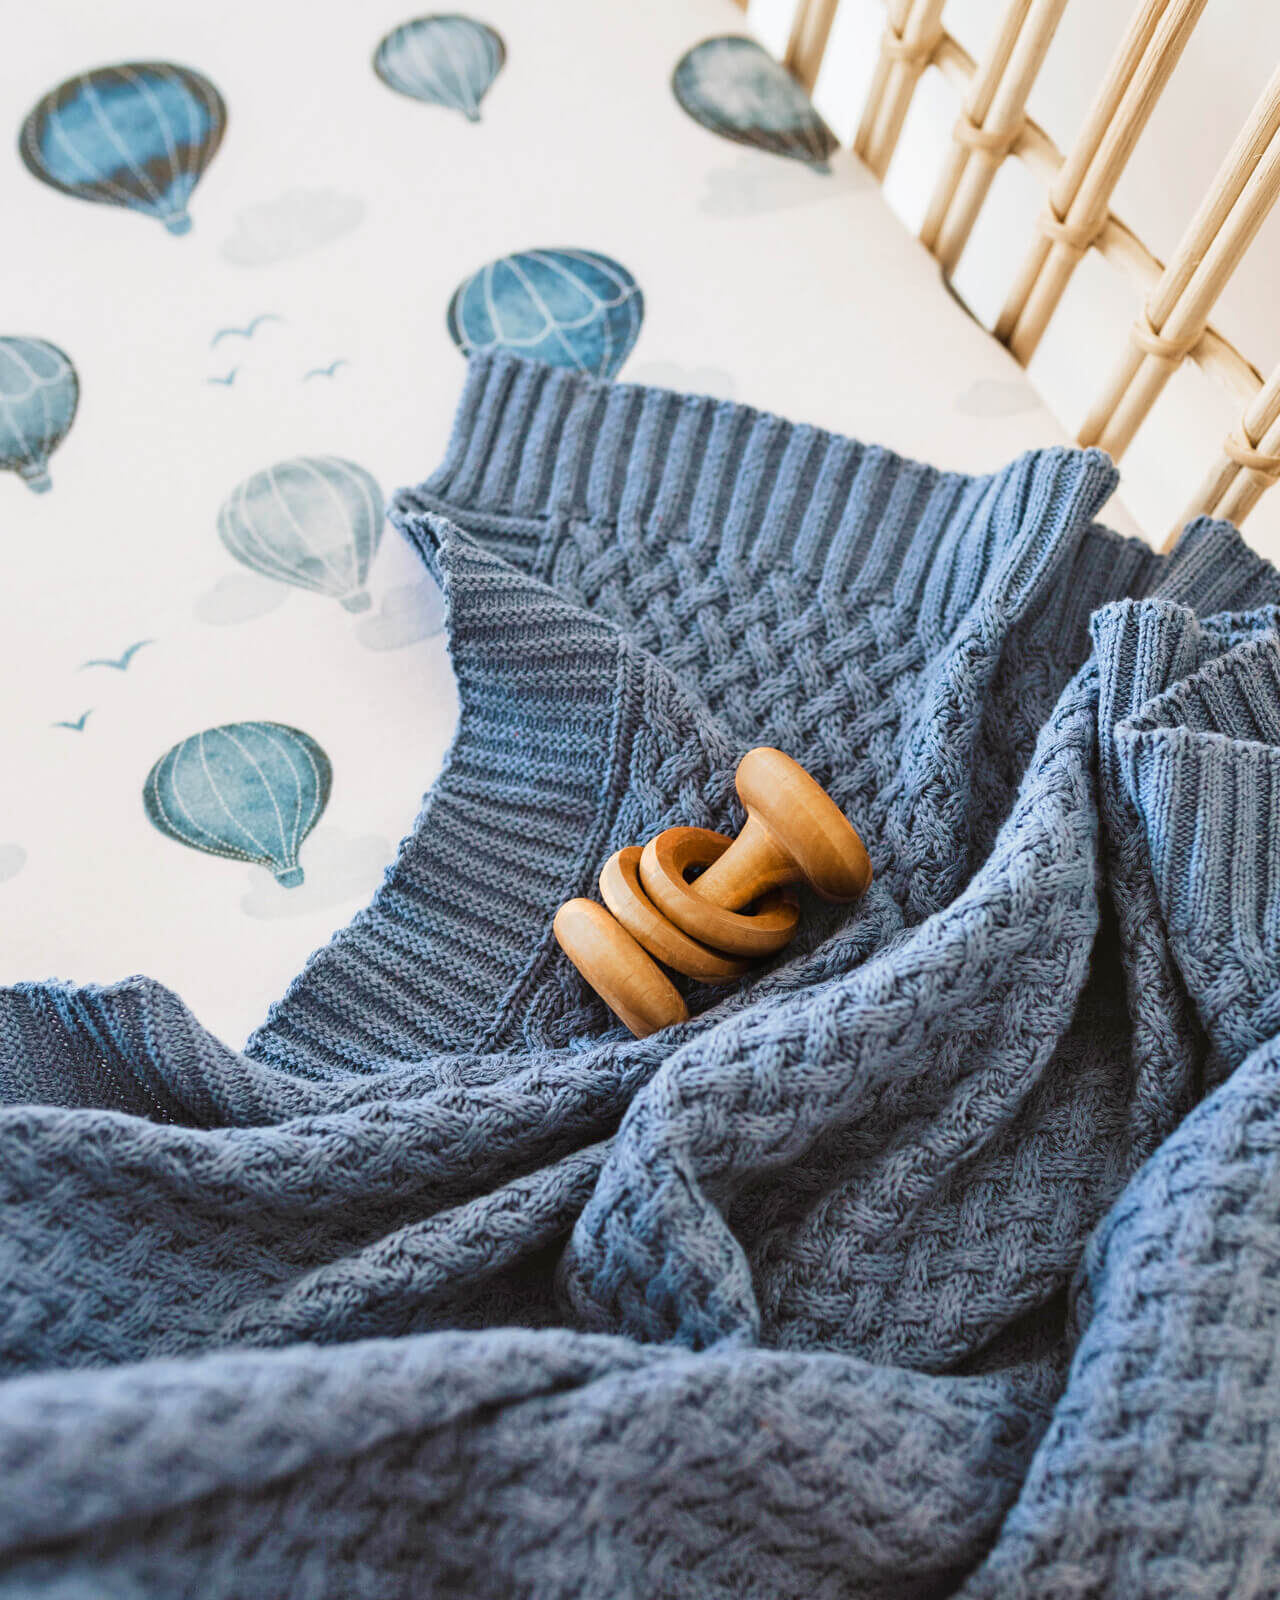 SNUGGLE HUNNY RIVER KNITTED BABY BLANKET